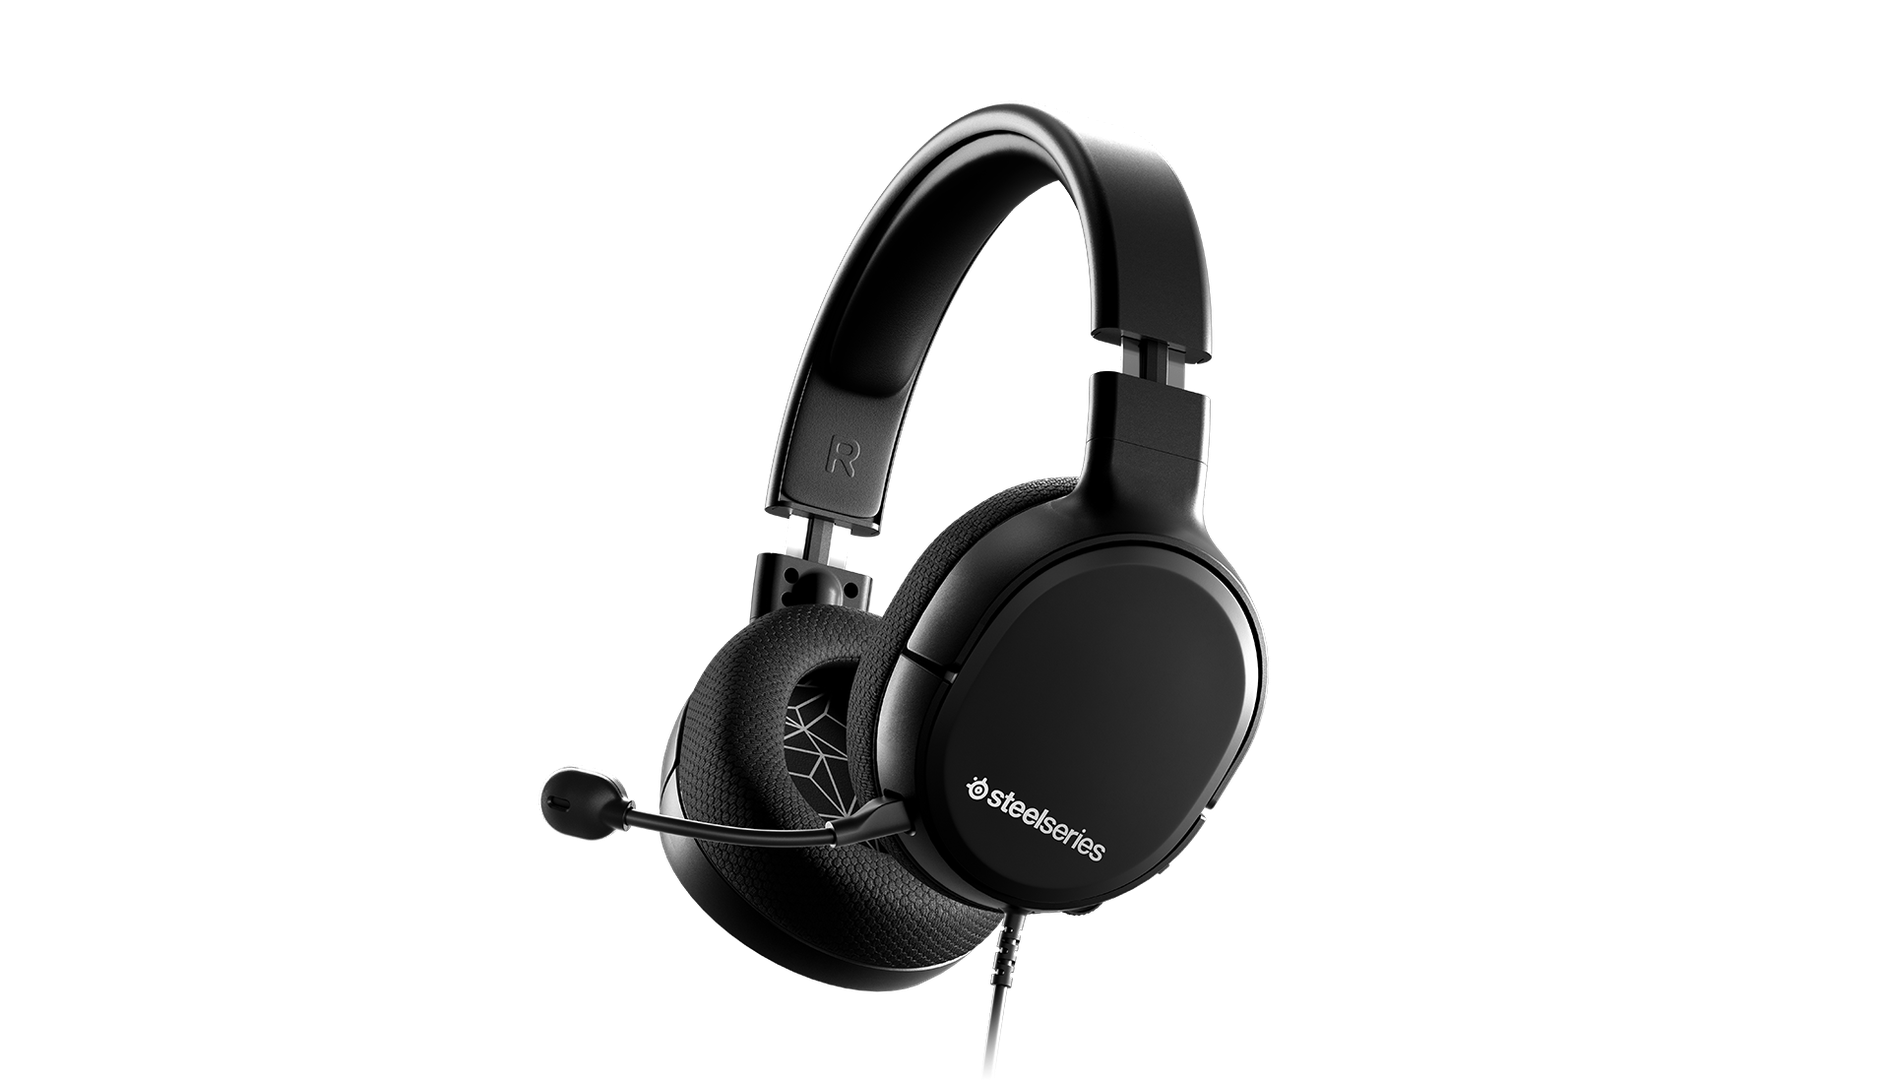 The Arctis 1 headset is attractive and great for users of all backgrounds.